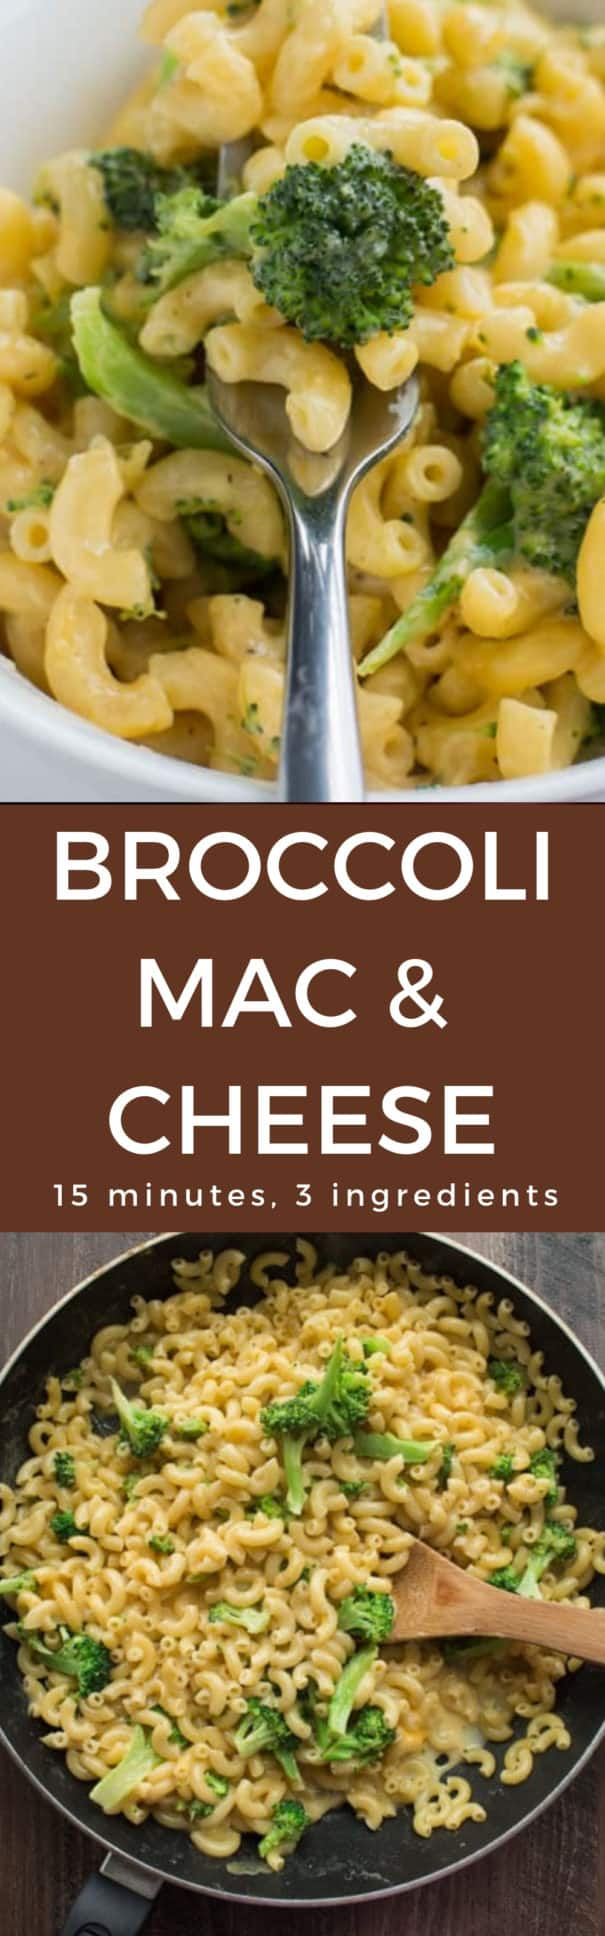 This stovetop 15 Minute Broccoli Mac and Cheese is made with just 1 pot and only 3 ingredients. Grab your pasta, Velveeta cheese and broccoli and make this easy creamy homemade mac and cheese recipe for dinner soon! Kids will love how delicious it tastes! And adults will love how simple it is to make!